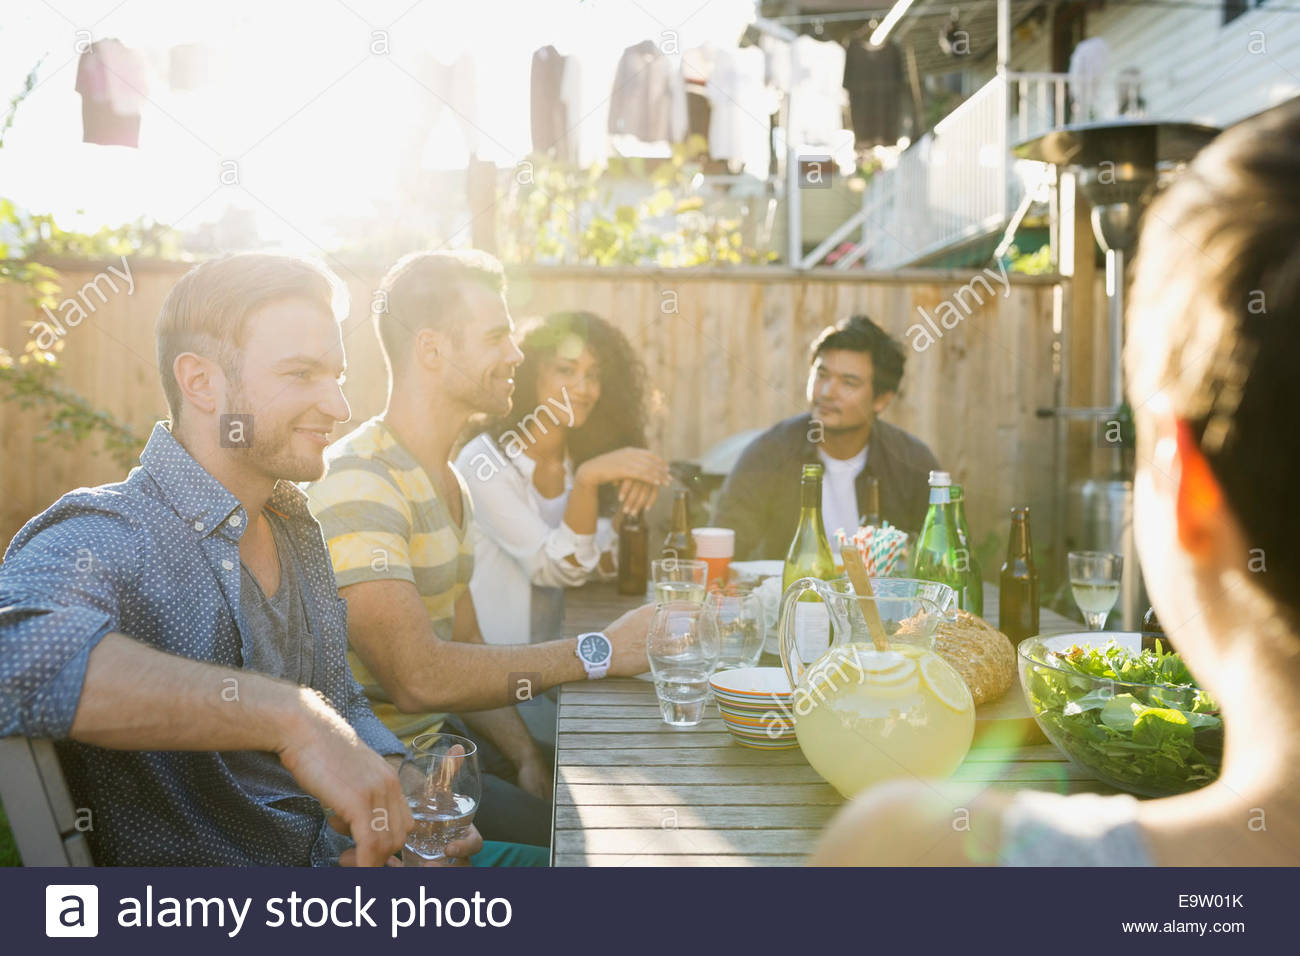 friends eating and drinking at backyard barbecue stock photo